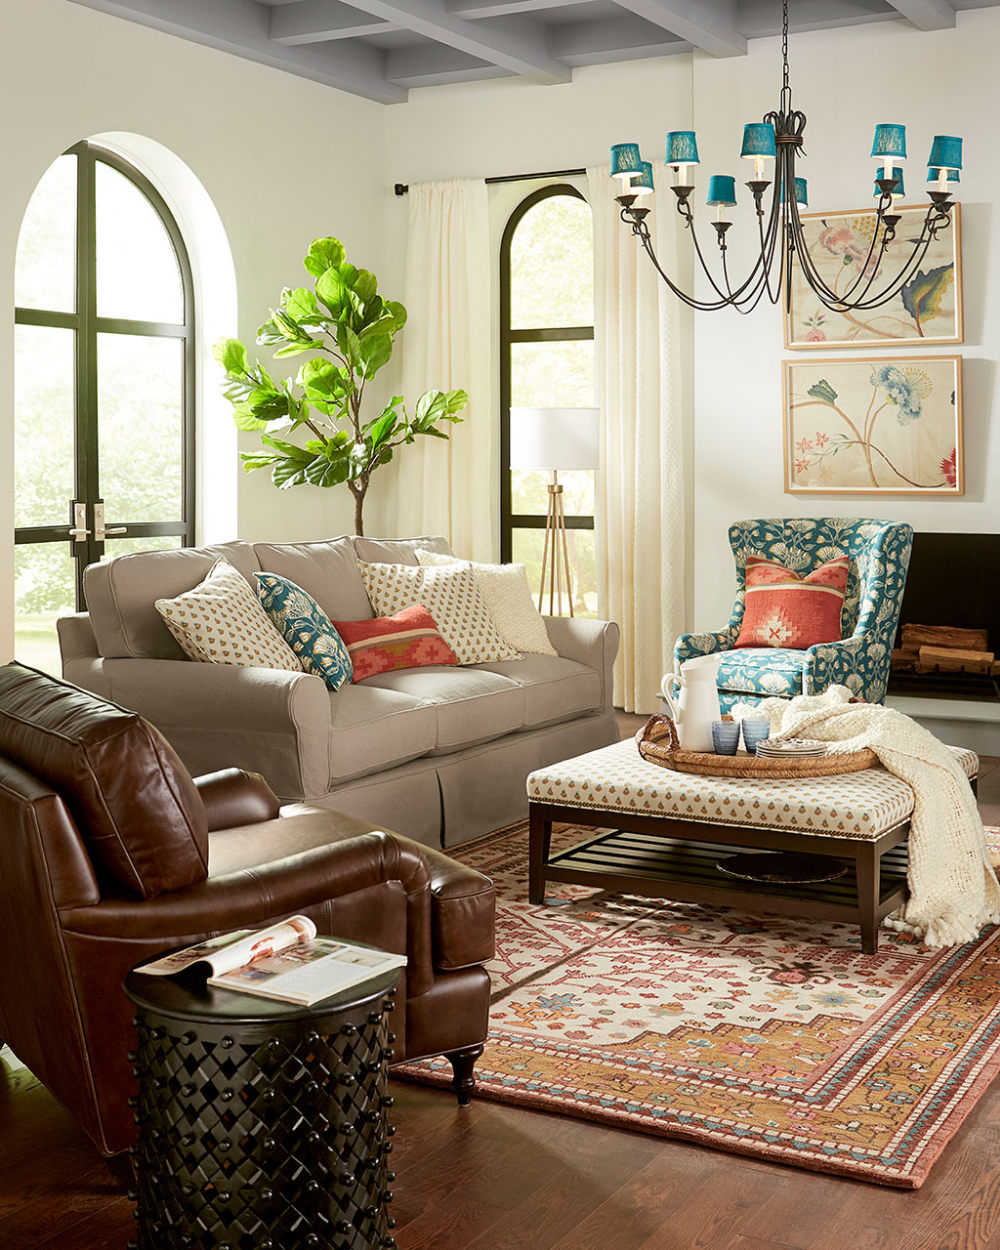 73 Eclectic Living Room Decor Ideas: Small Living Room Ideas For More Seating And Style